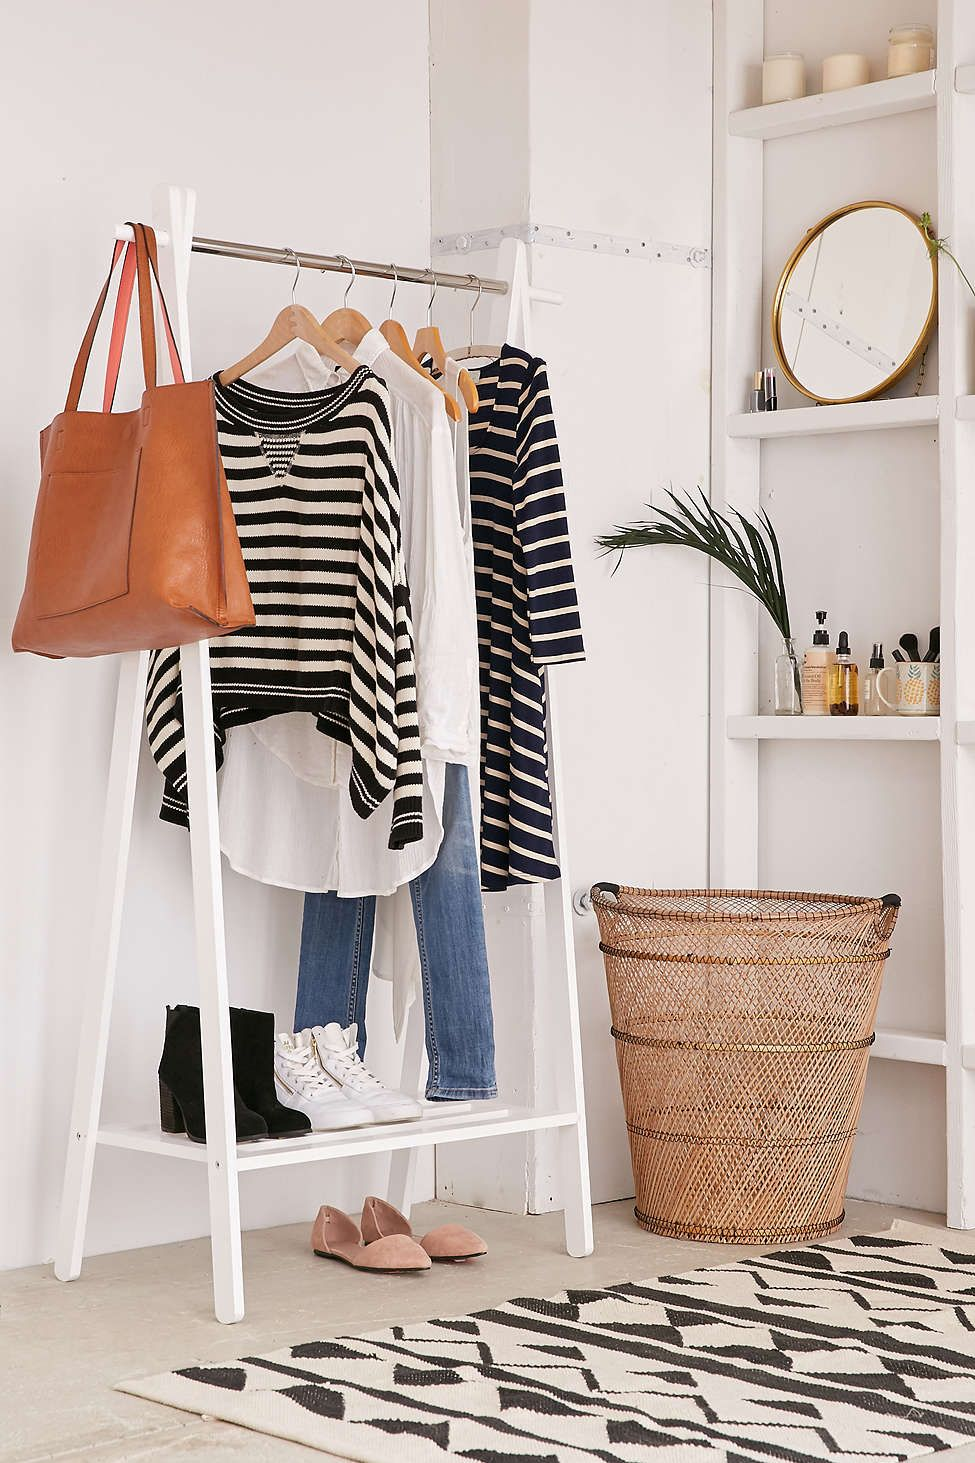 Kleiderständer Urban Outfitters Wooden Clothing Rack Bohemian Bedroom Space Furniture Home